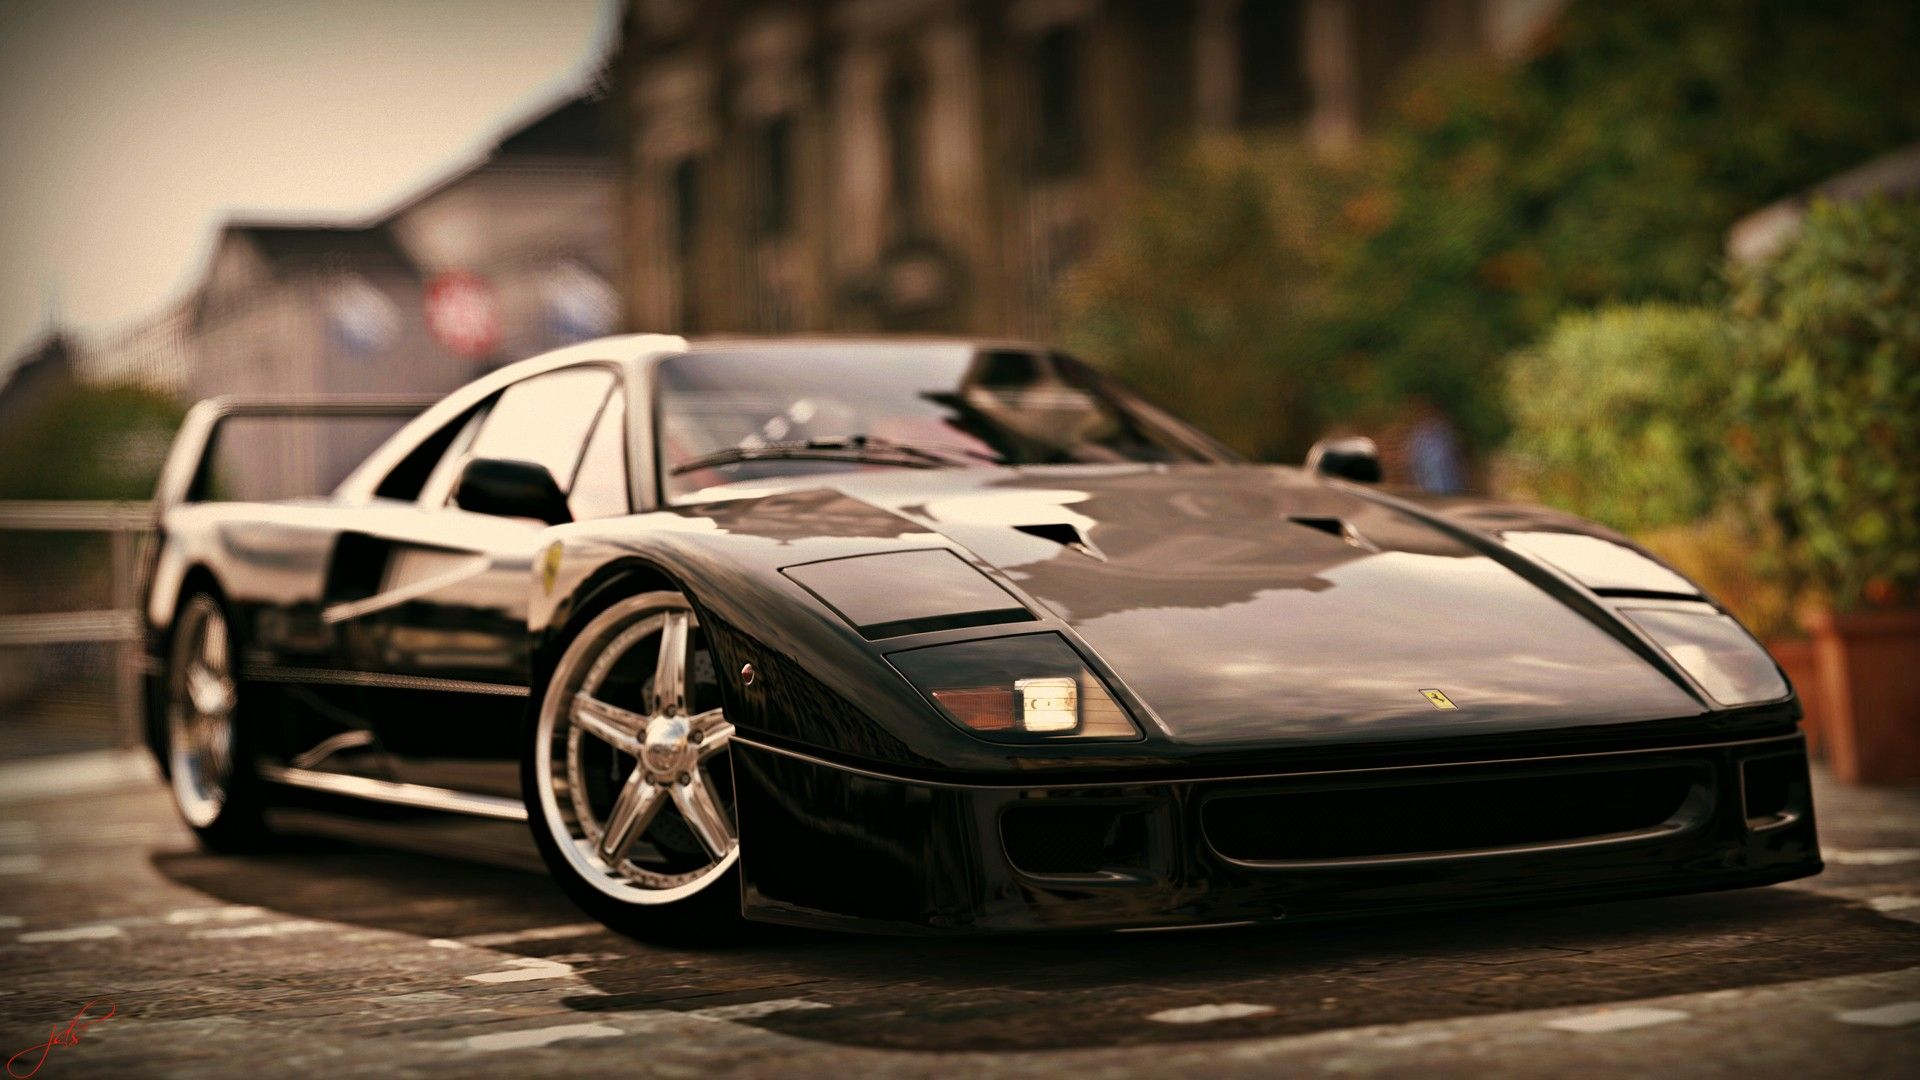 Ferrari F40 Black With Images Ferrari F40 Ferrari Sports Car